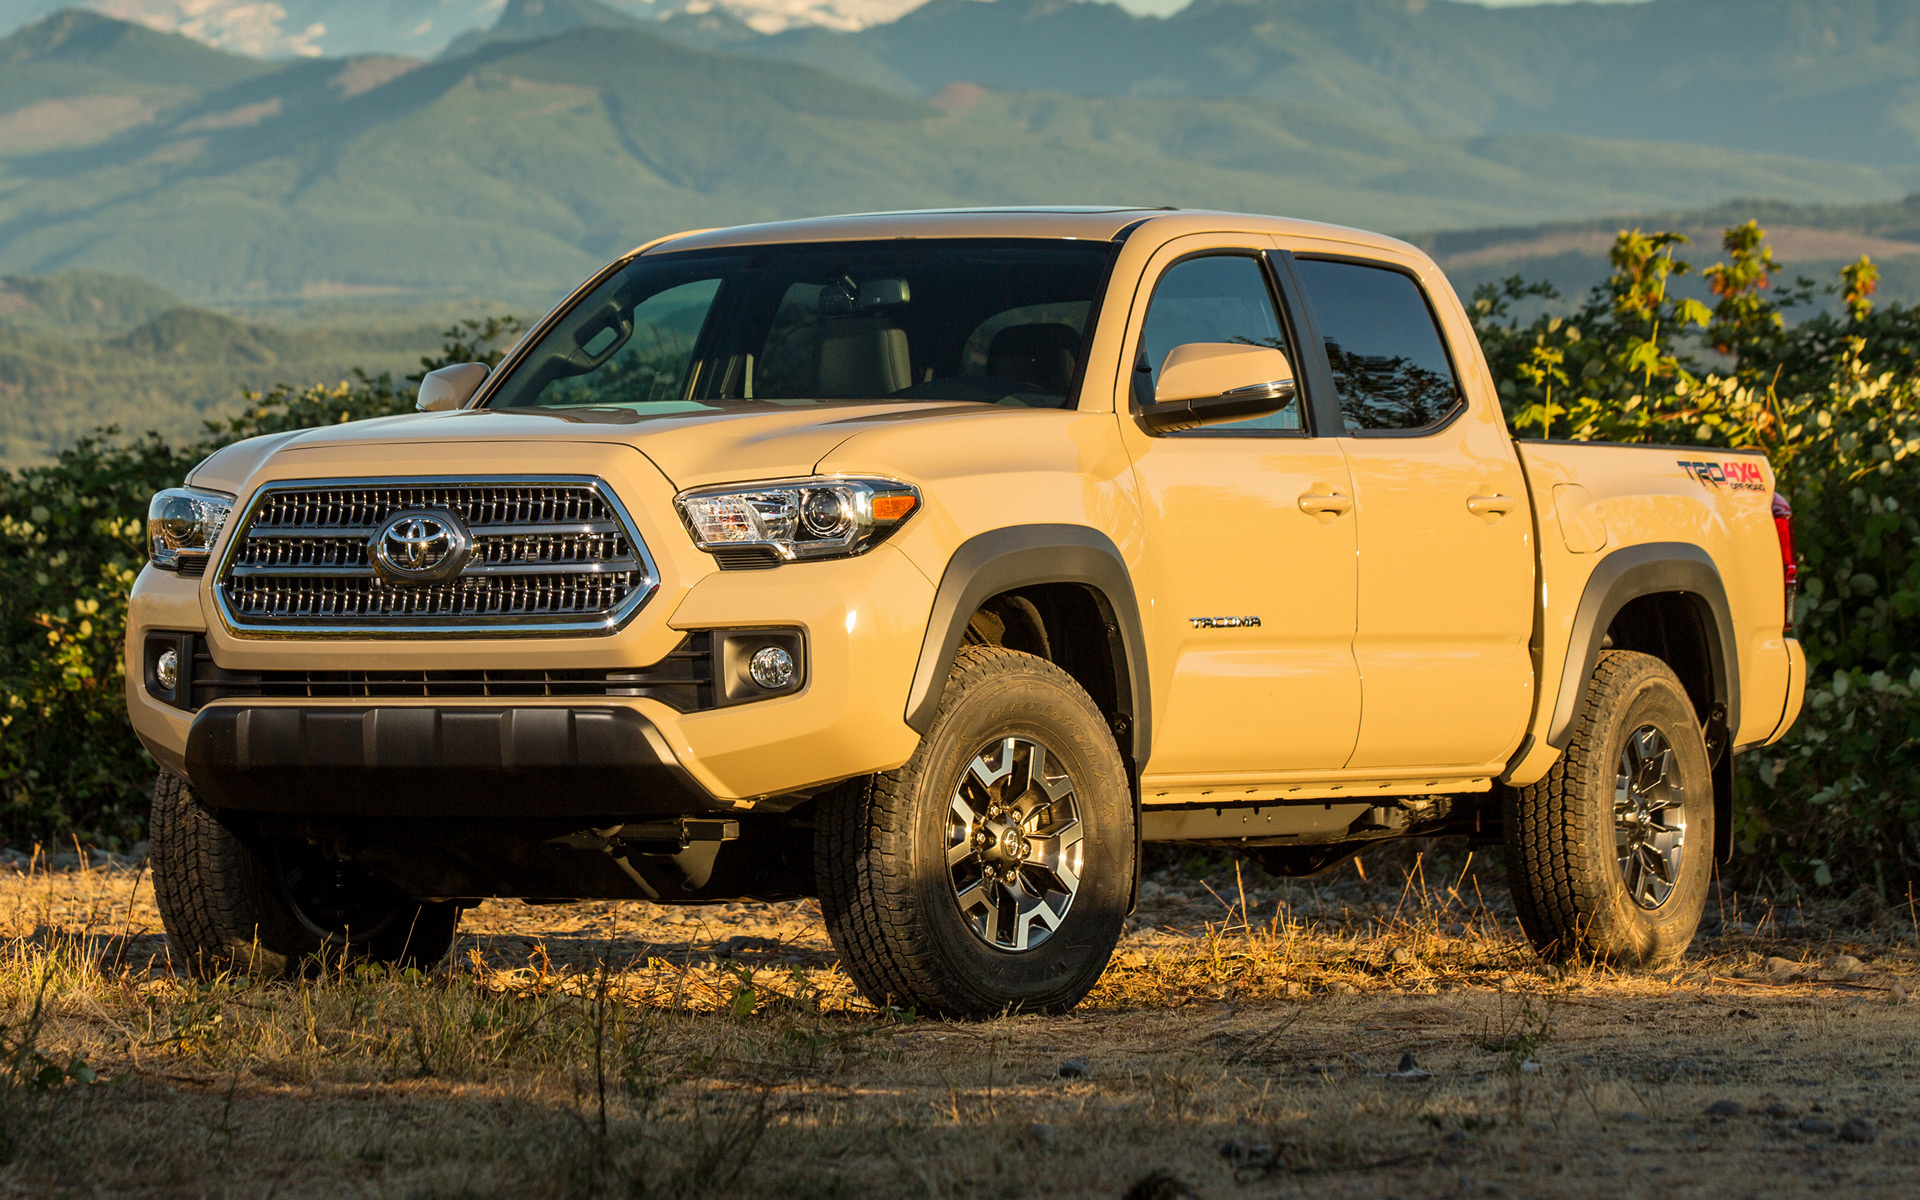 Toyota Tacoma TRD Off-Road Double Cab (2016) Wallpapers and HD Images - Car Pixel